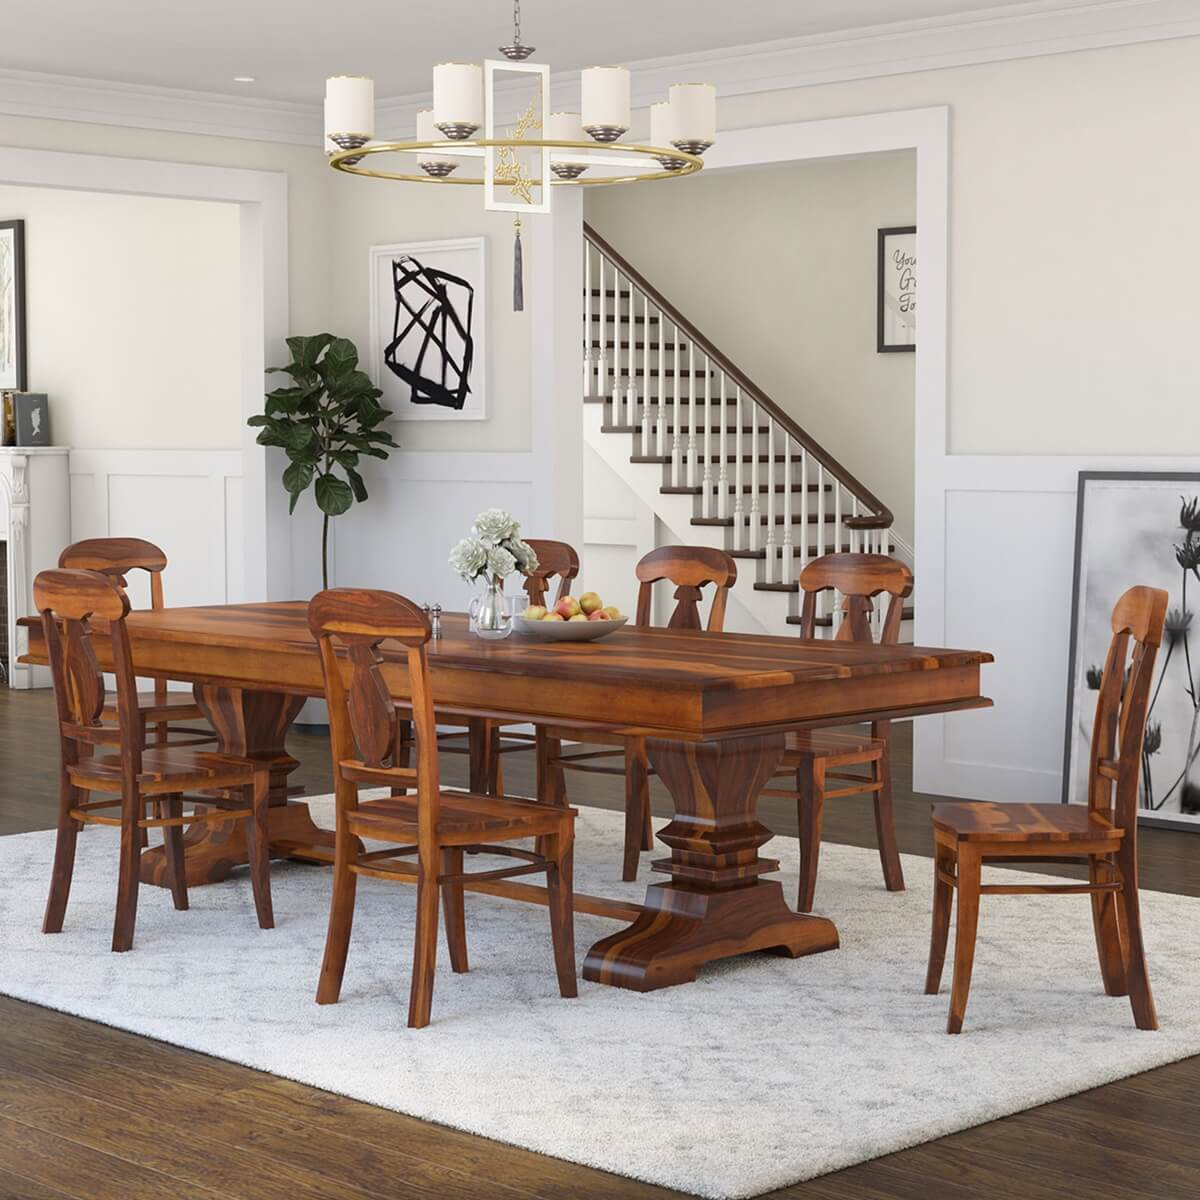 Nottingham solid wood 92 trestle dining table benches 2 for Wood dining table with bench and chairs